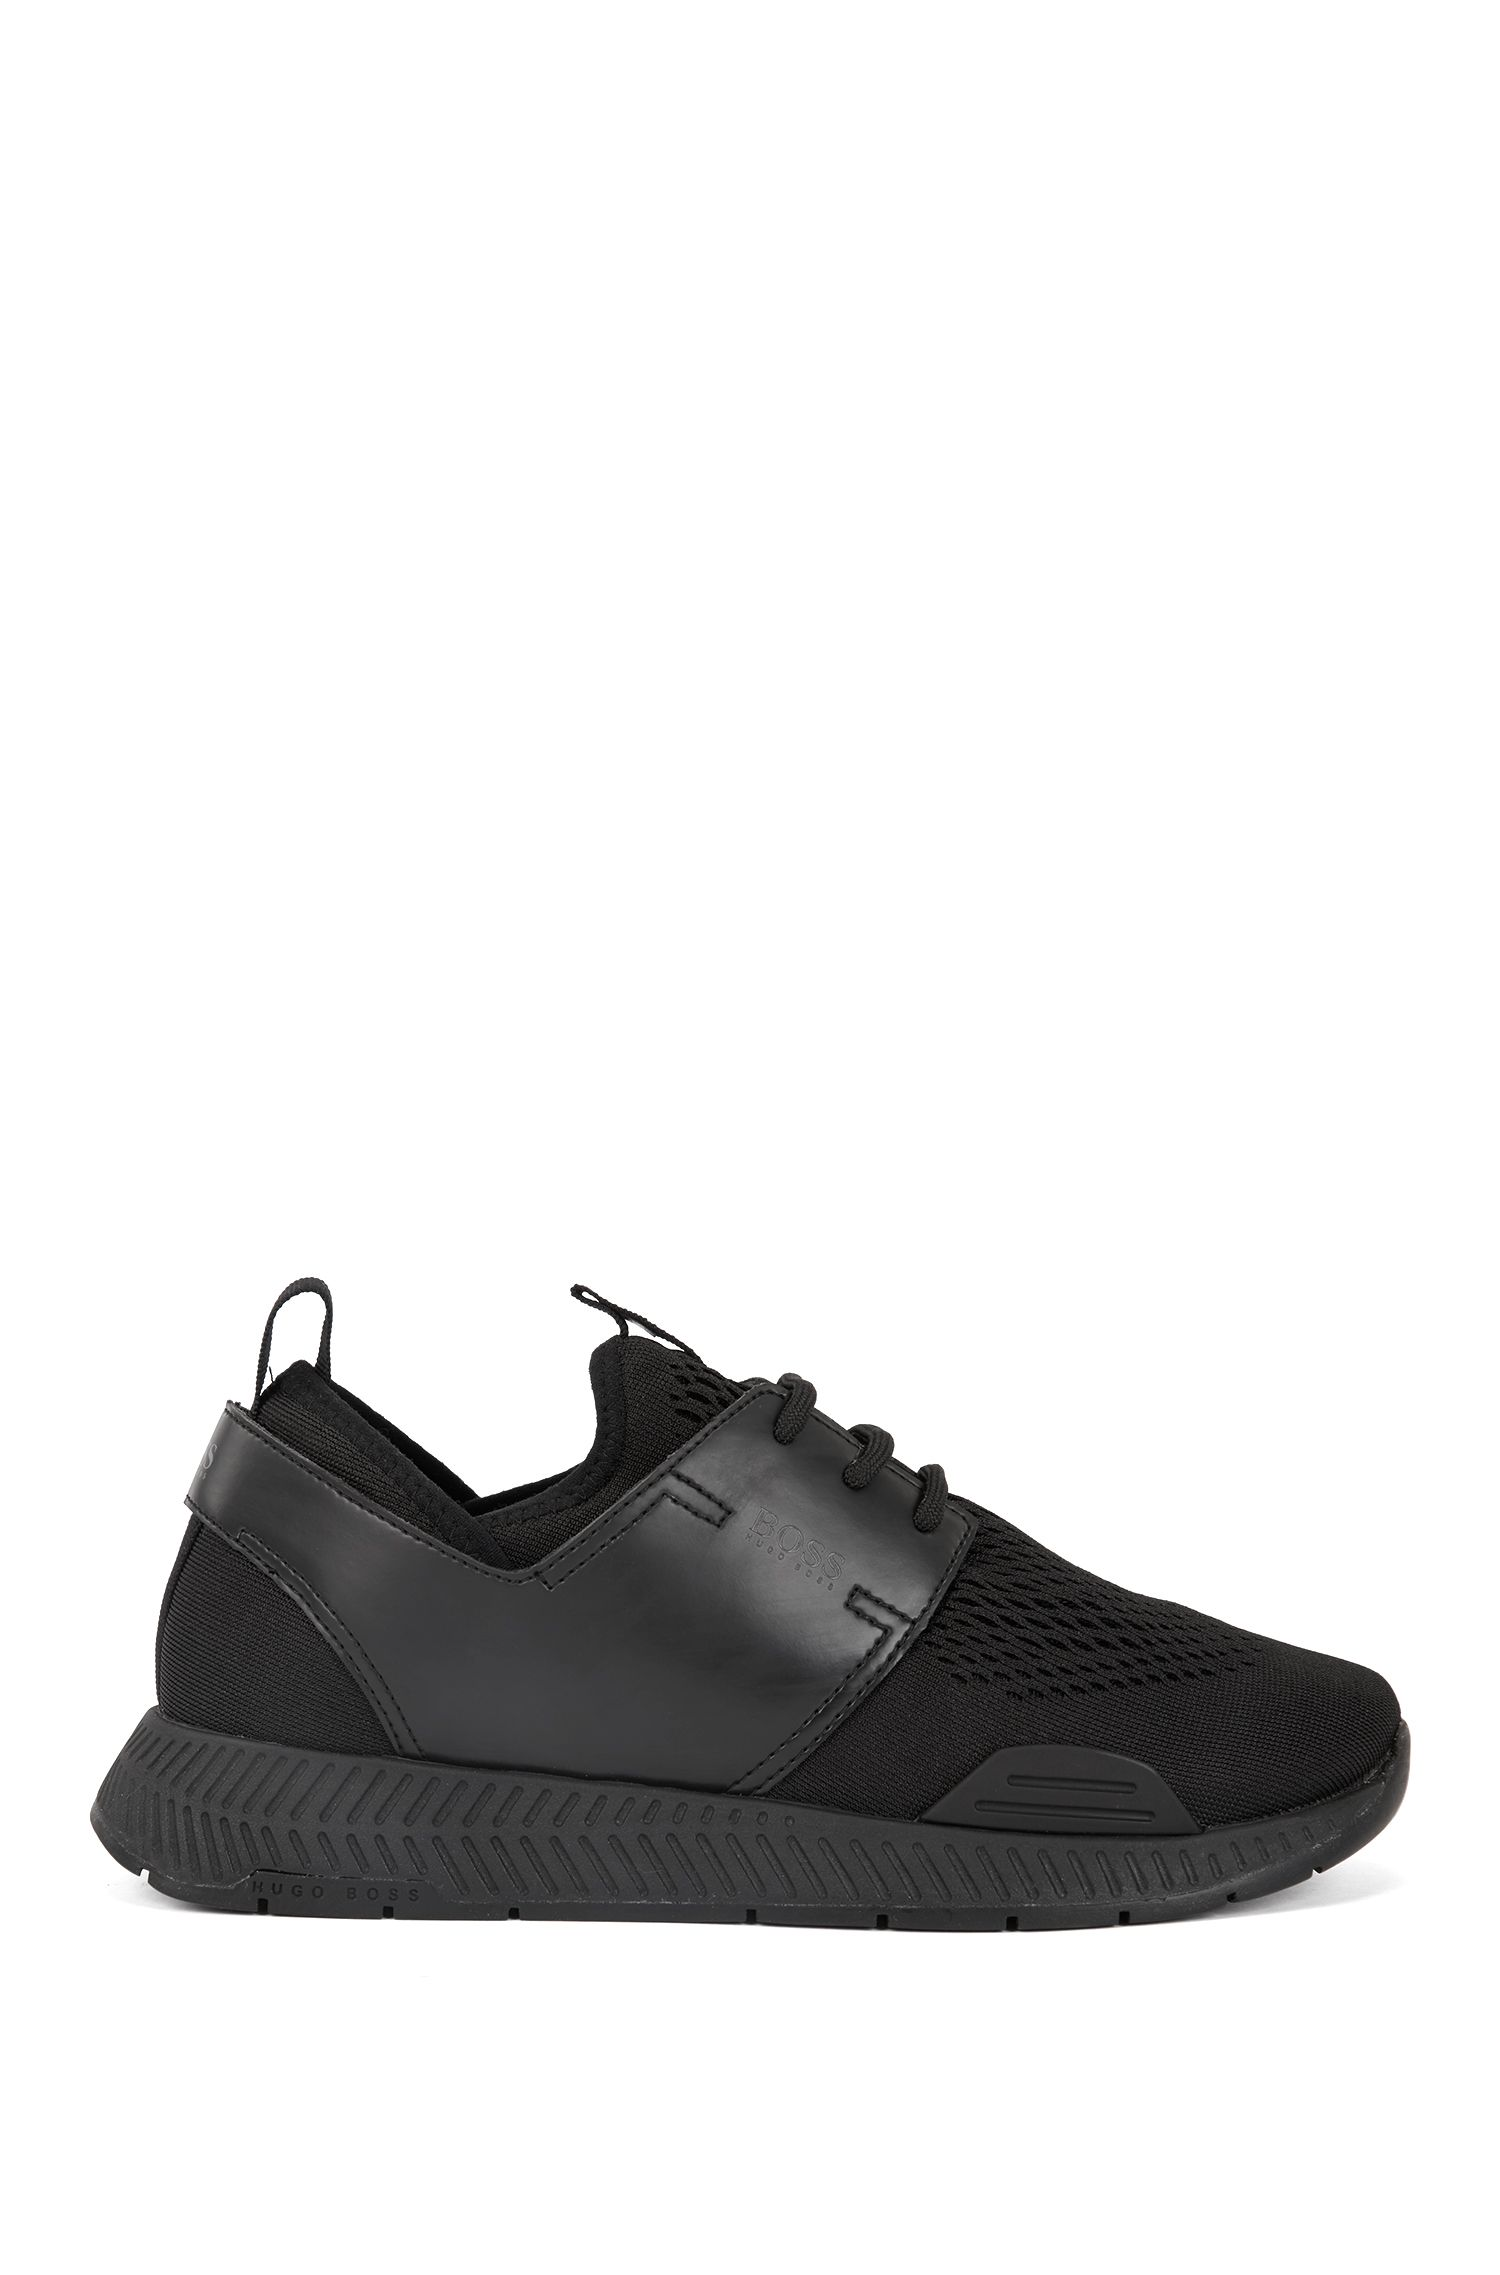 Unisex low-top sneakers with perforated mesh uppers, Black